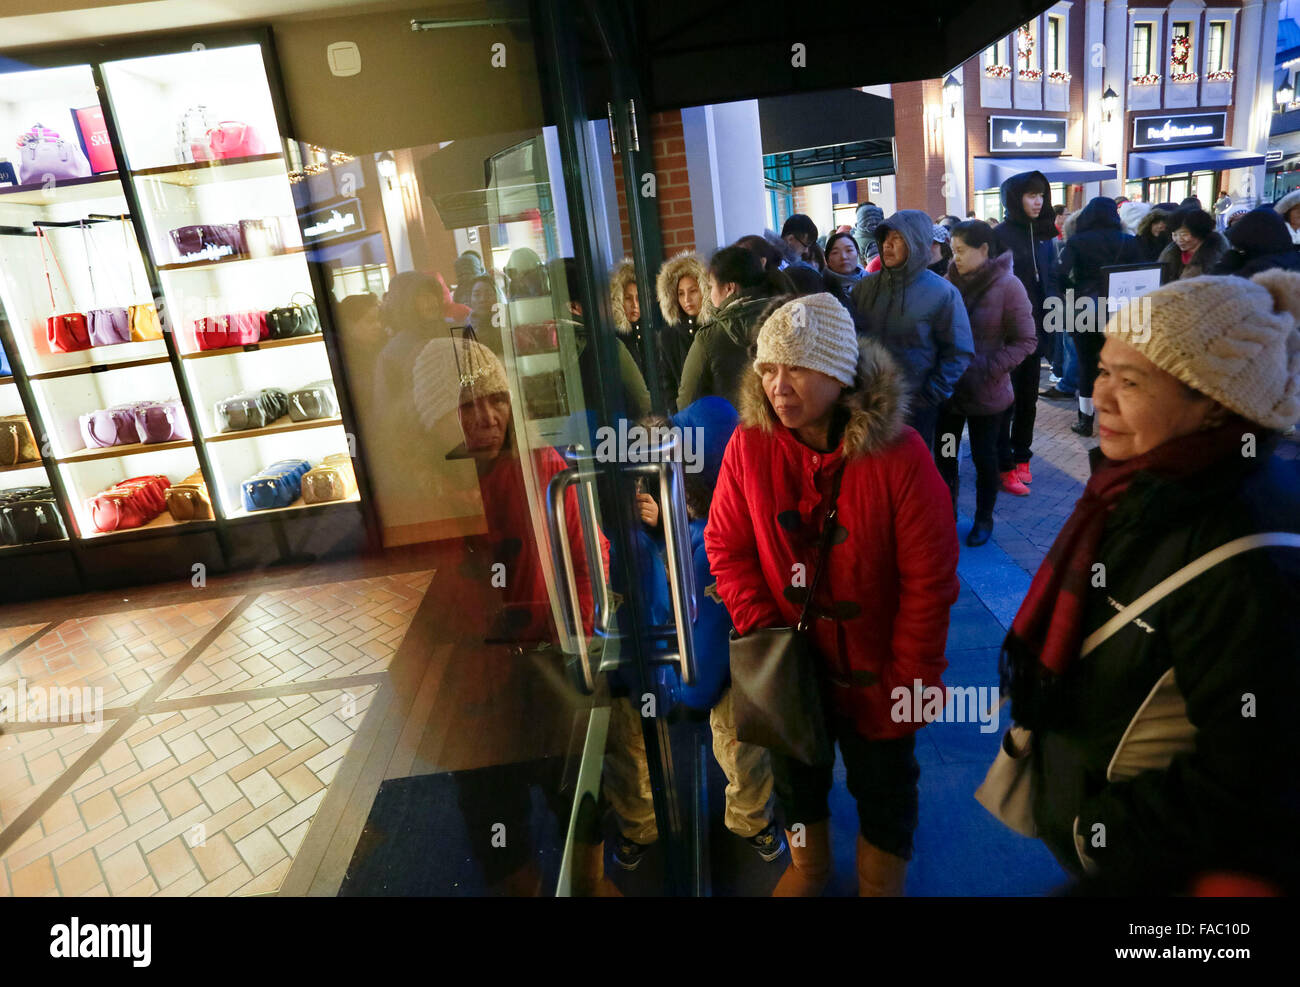 Vancouver, Canada. 26th Dec, 2015. Residents wait for a store opening during Boxing Day sales in Vancouver, Canada, - Stock Image